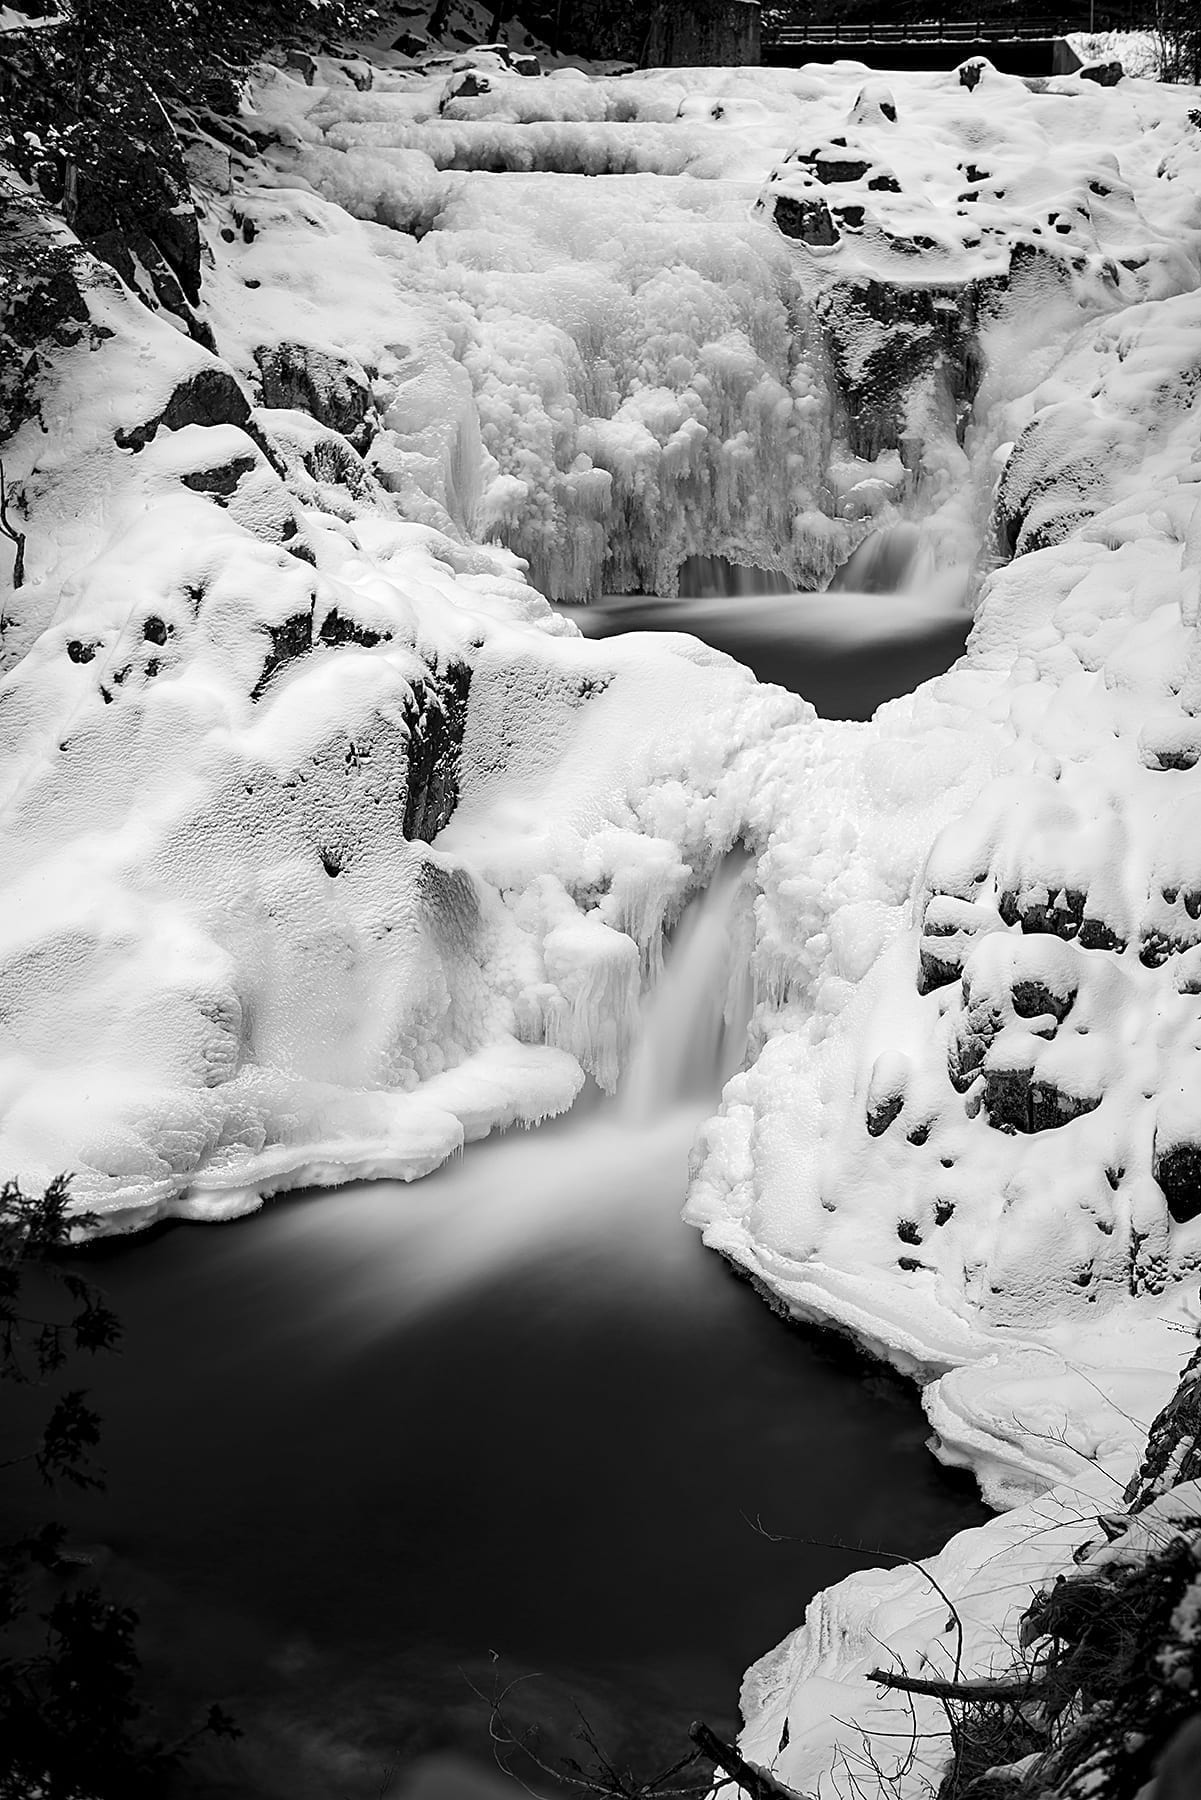 Waterfall Wednesday Clickety Click Jan. 13th 2021